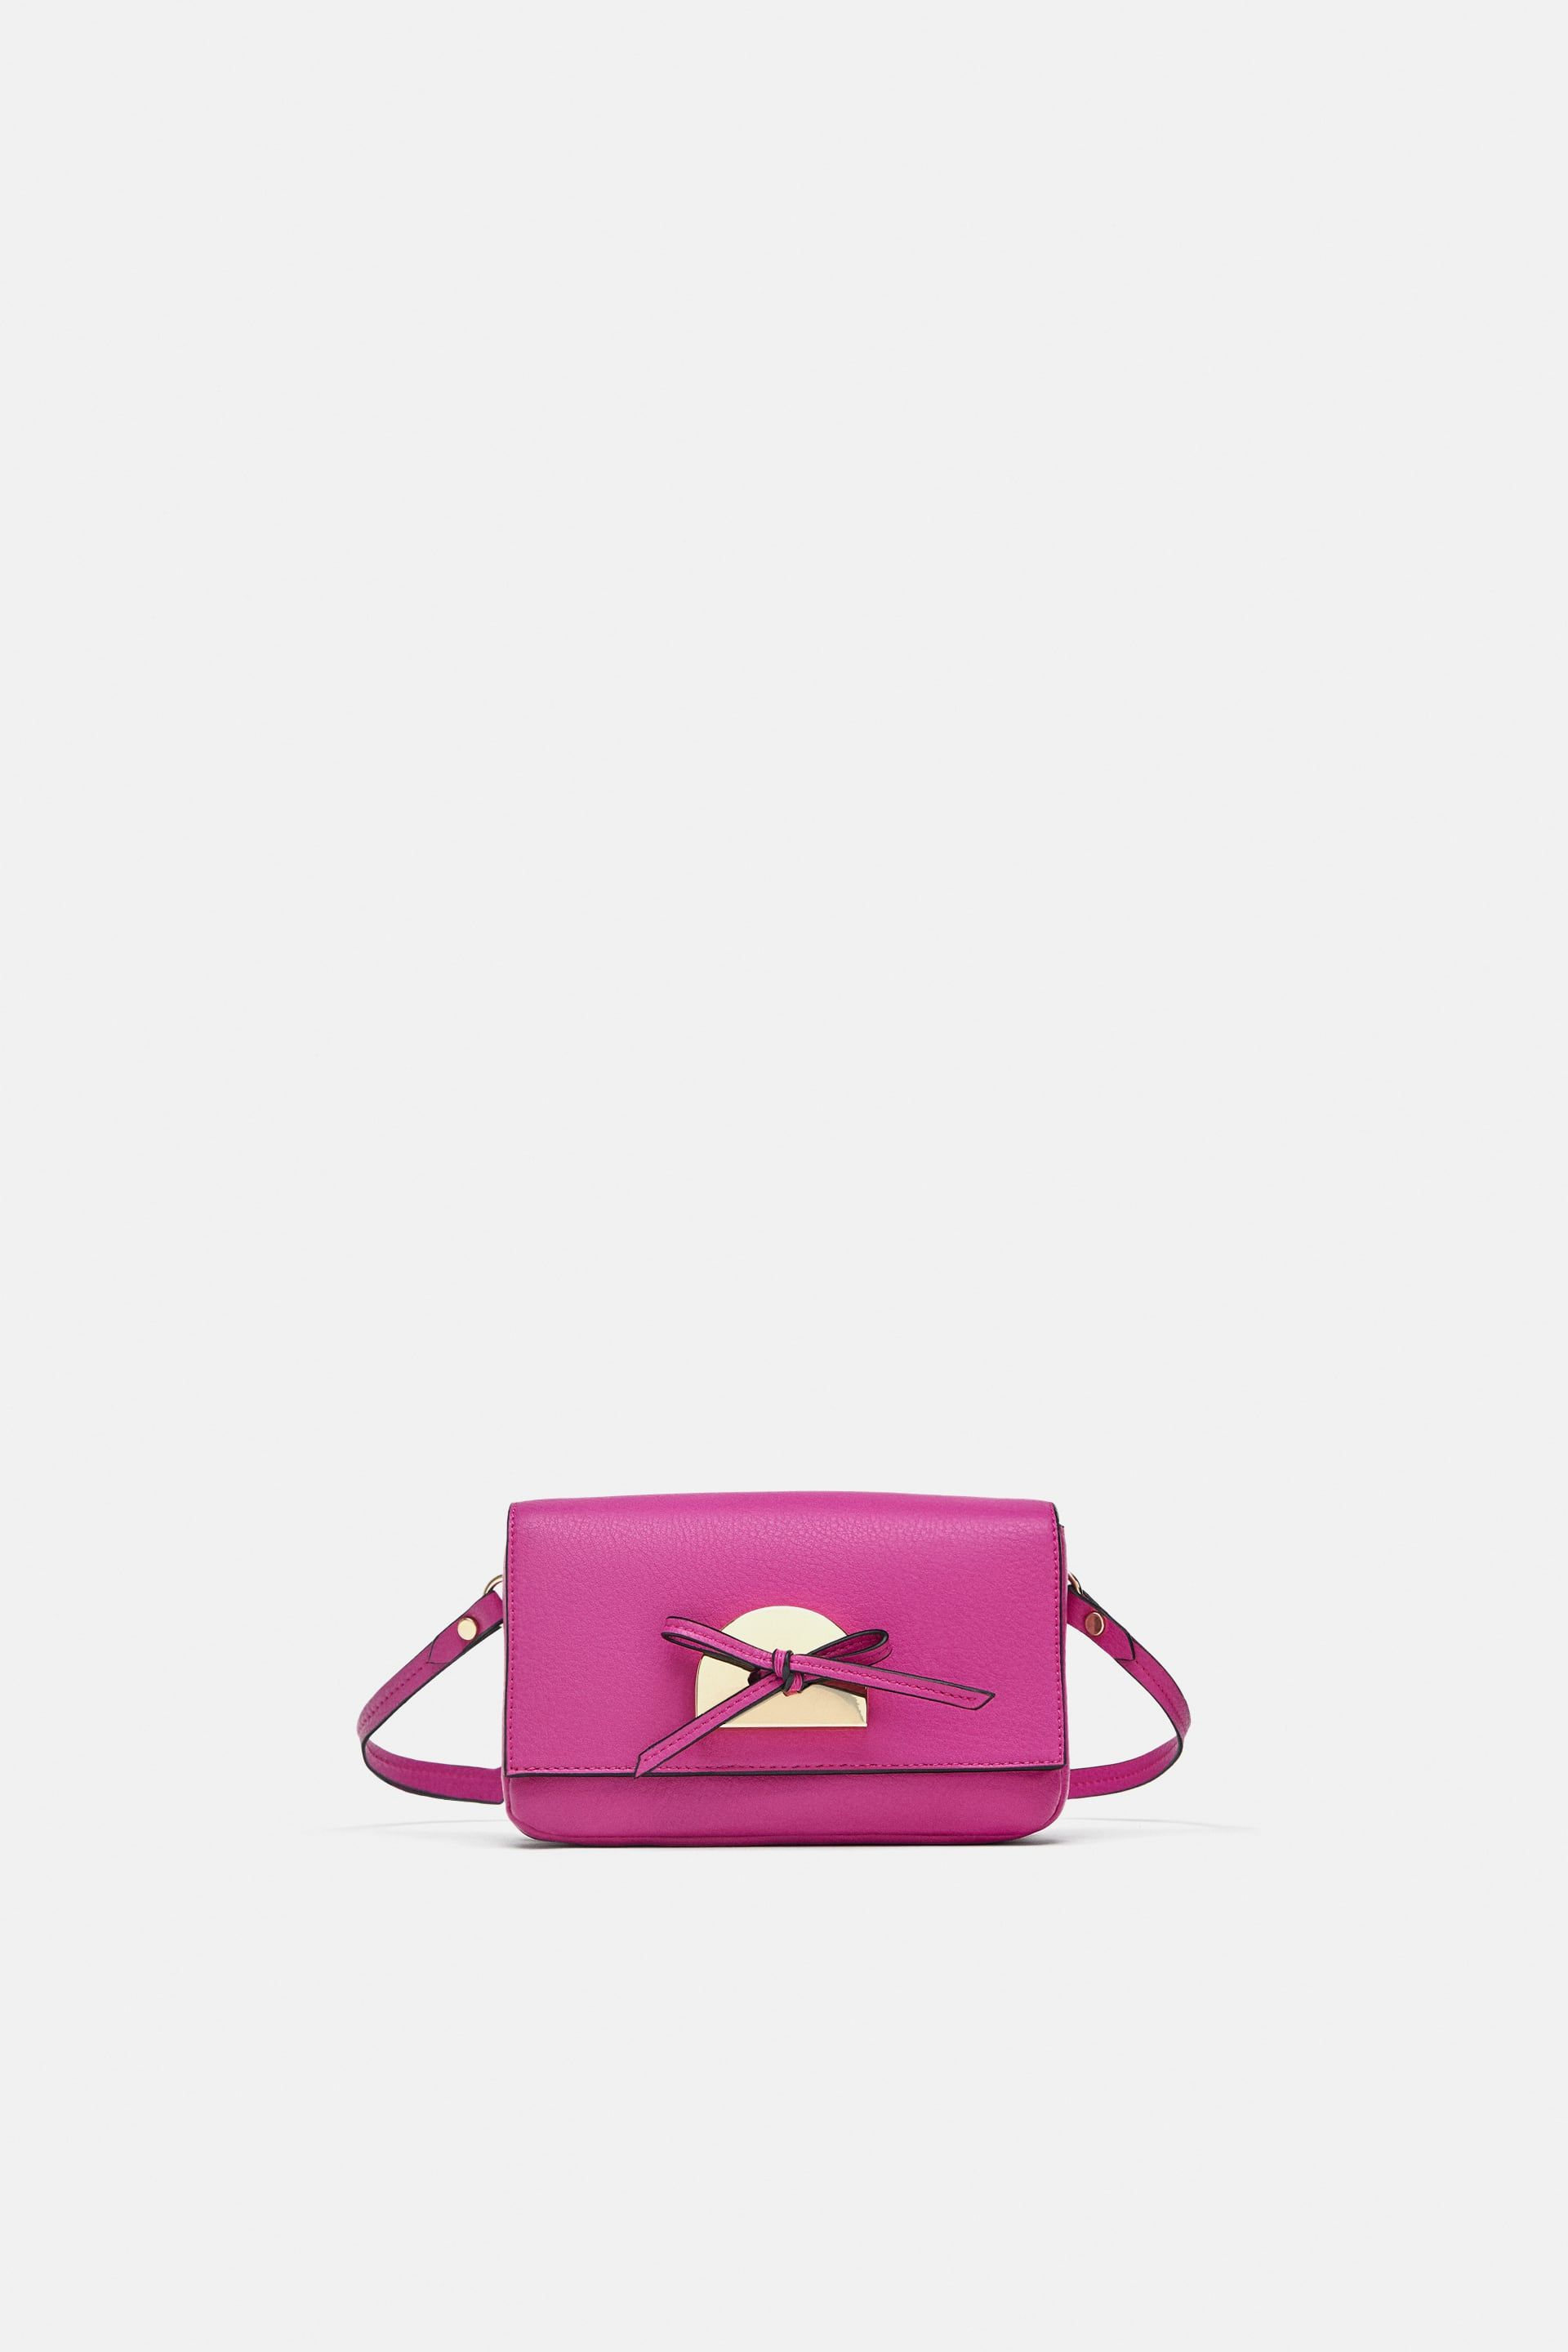 e64aa0d64c Image 1 of MINI CROSSBODY BAG WITH BOW from Zara | B A G S in 2019 ...